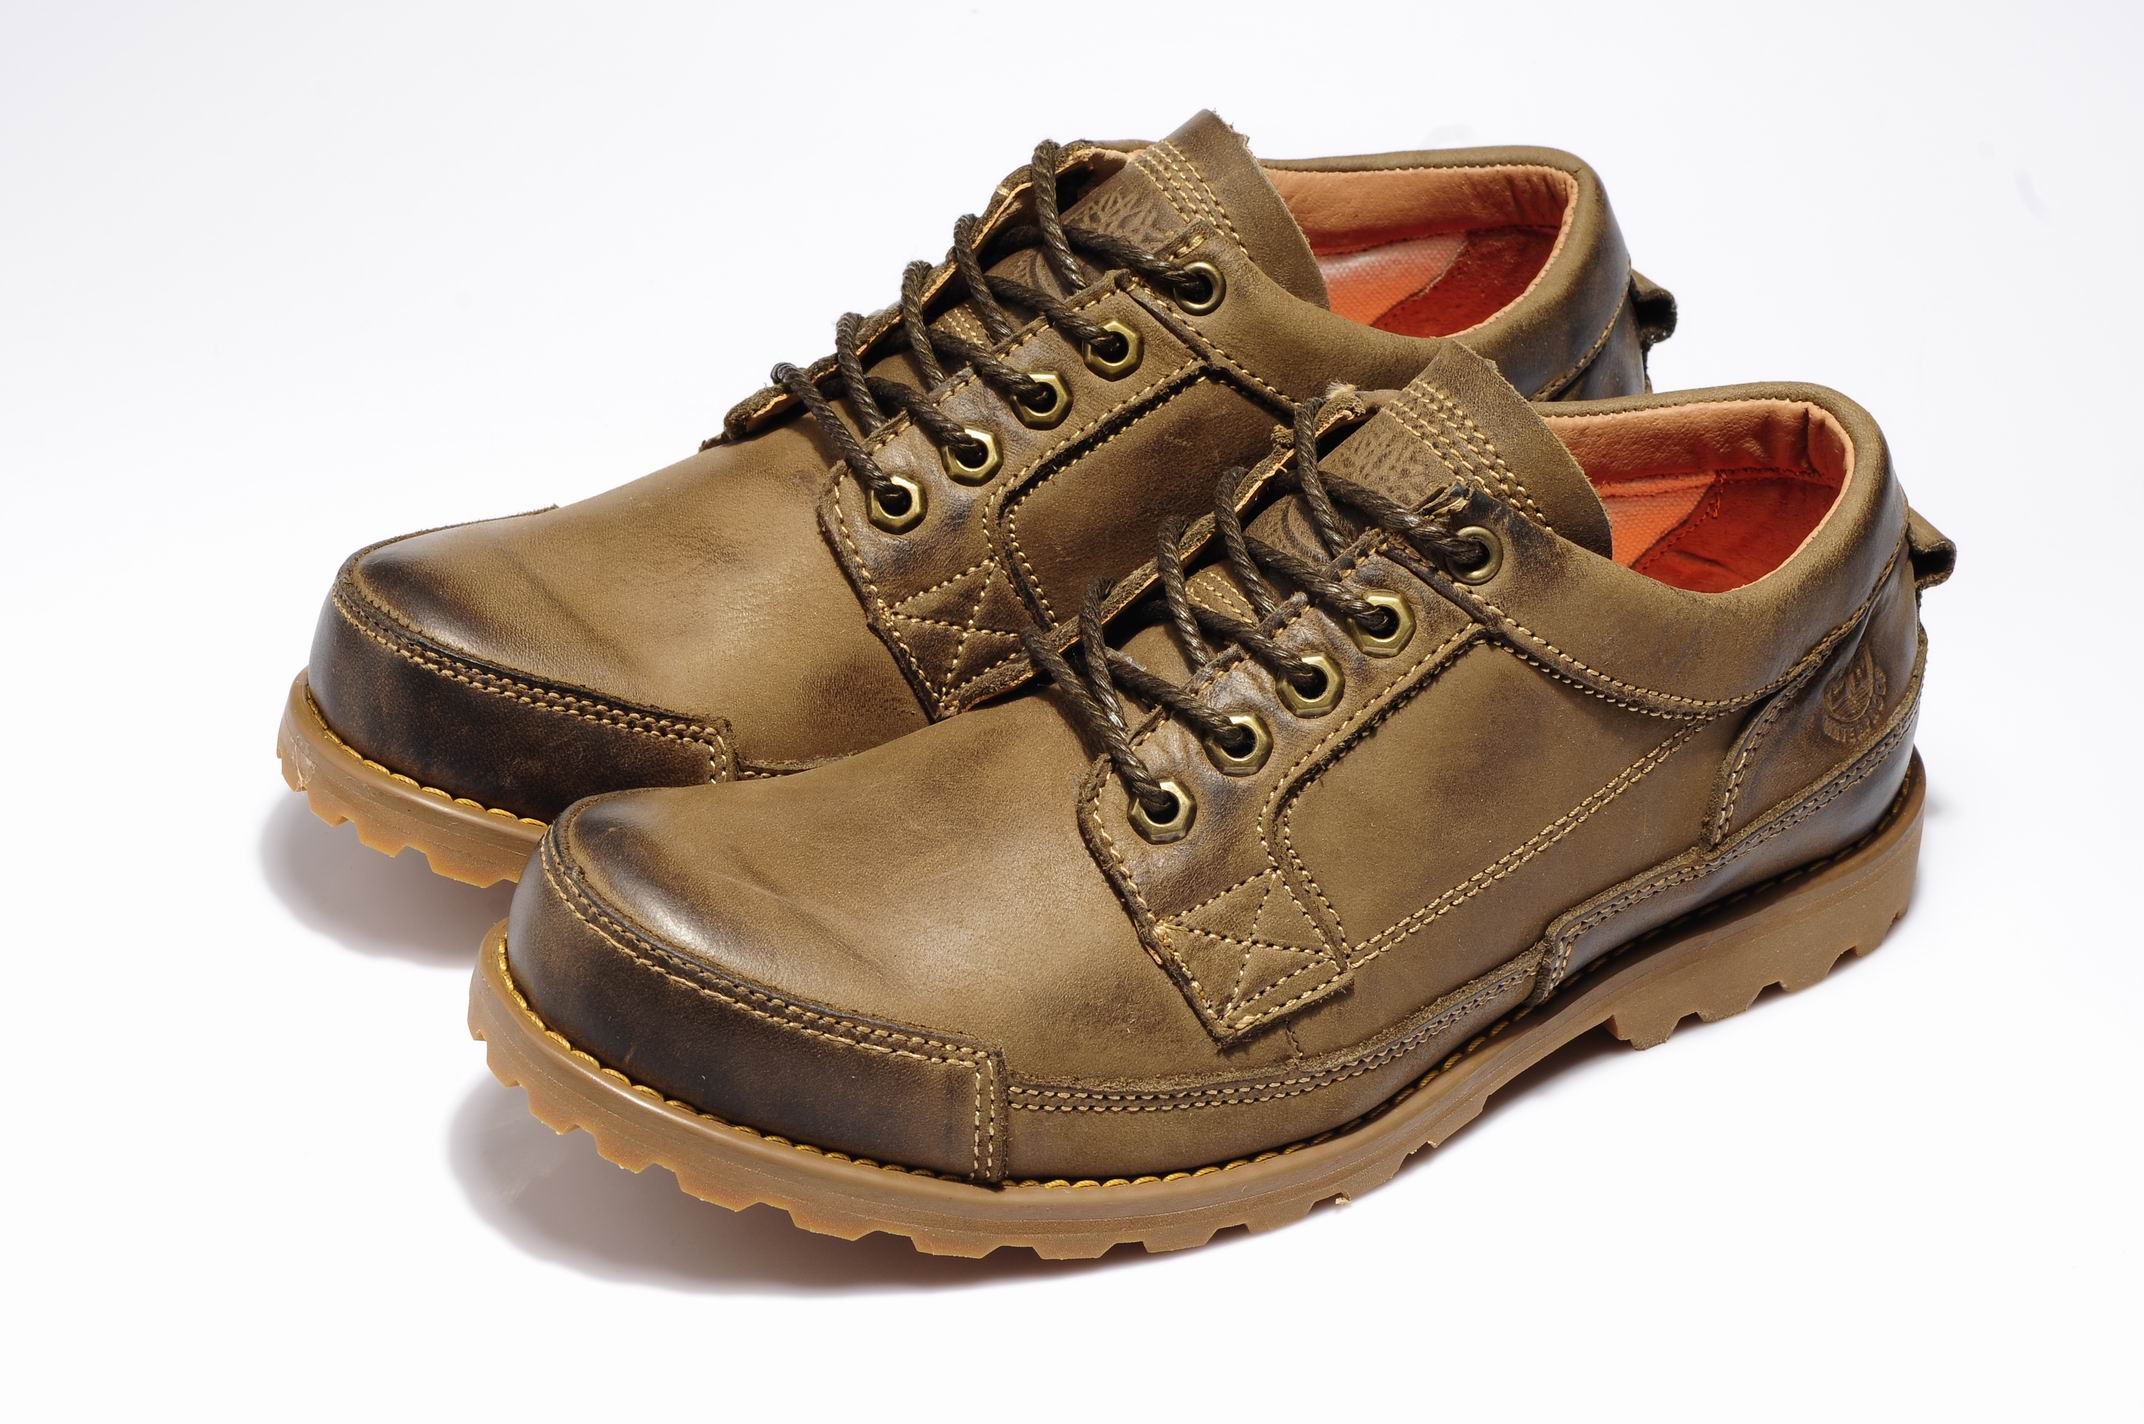 Chaussure Chaussure Earthkeepers Timberland Timberland Homme arSUaO